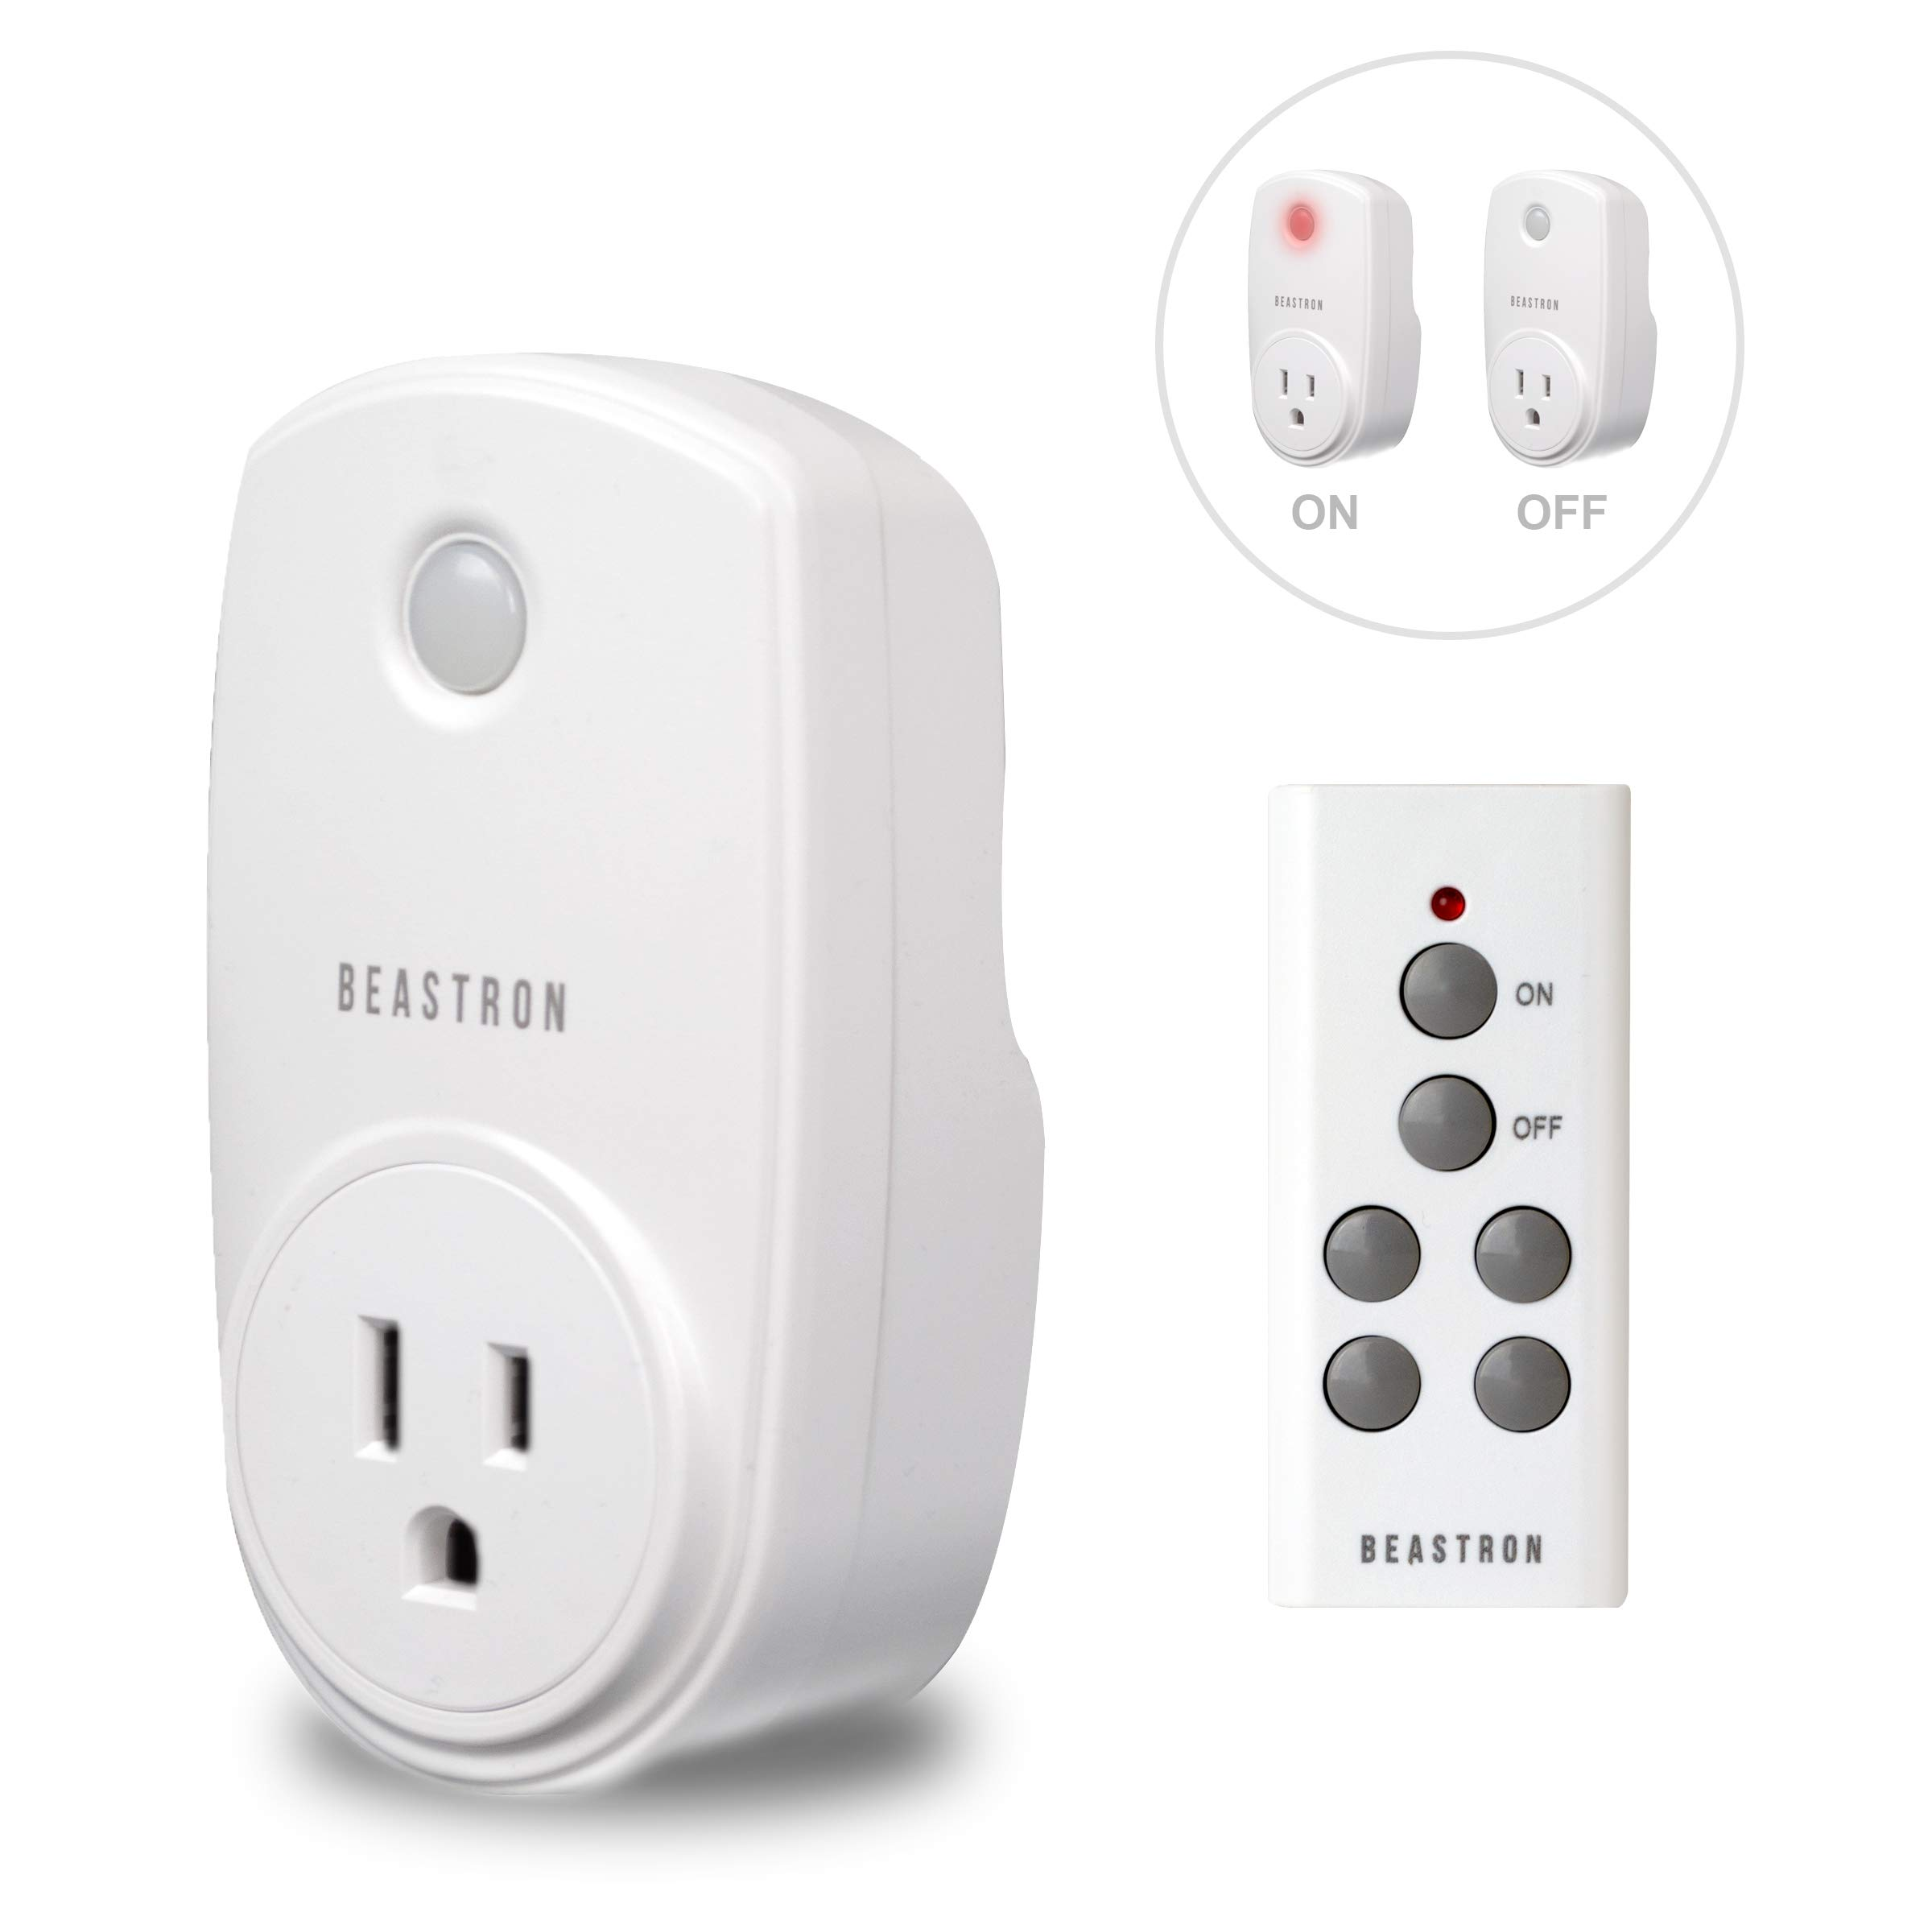 Beastron Remote Control Electrical Outlet Switch for Lights and Household Appliances with A 100 ft.Range, White (1Pack) by Beastron